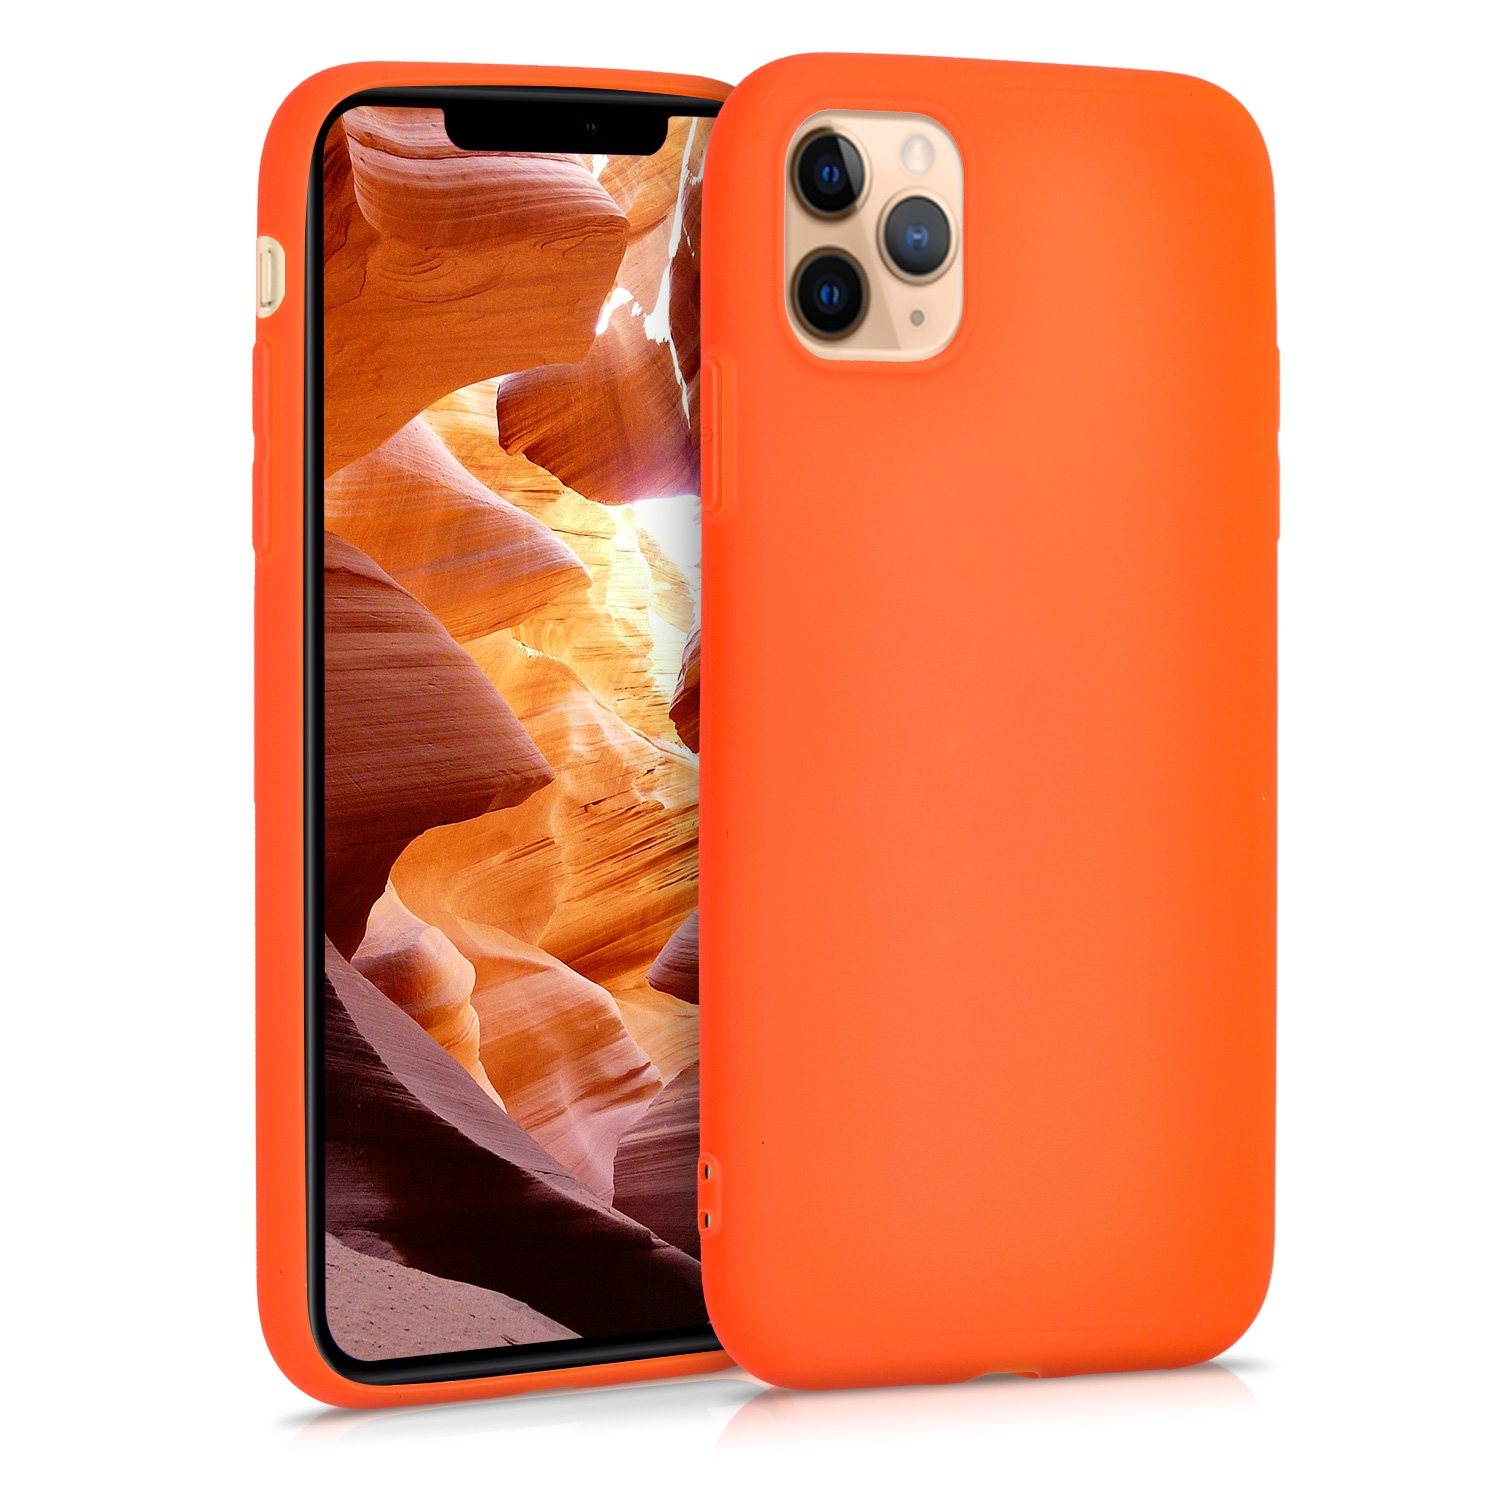 KW Θήκη Σιλικόνης Apple iPhone 11 Pro - Neon Orange (49781.69)